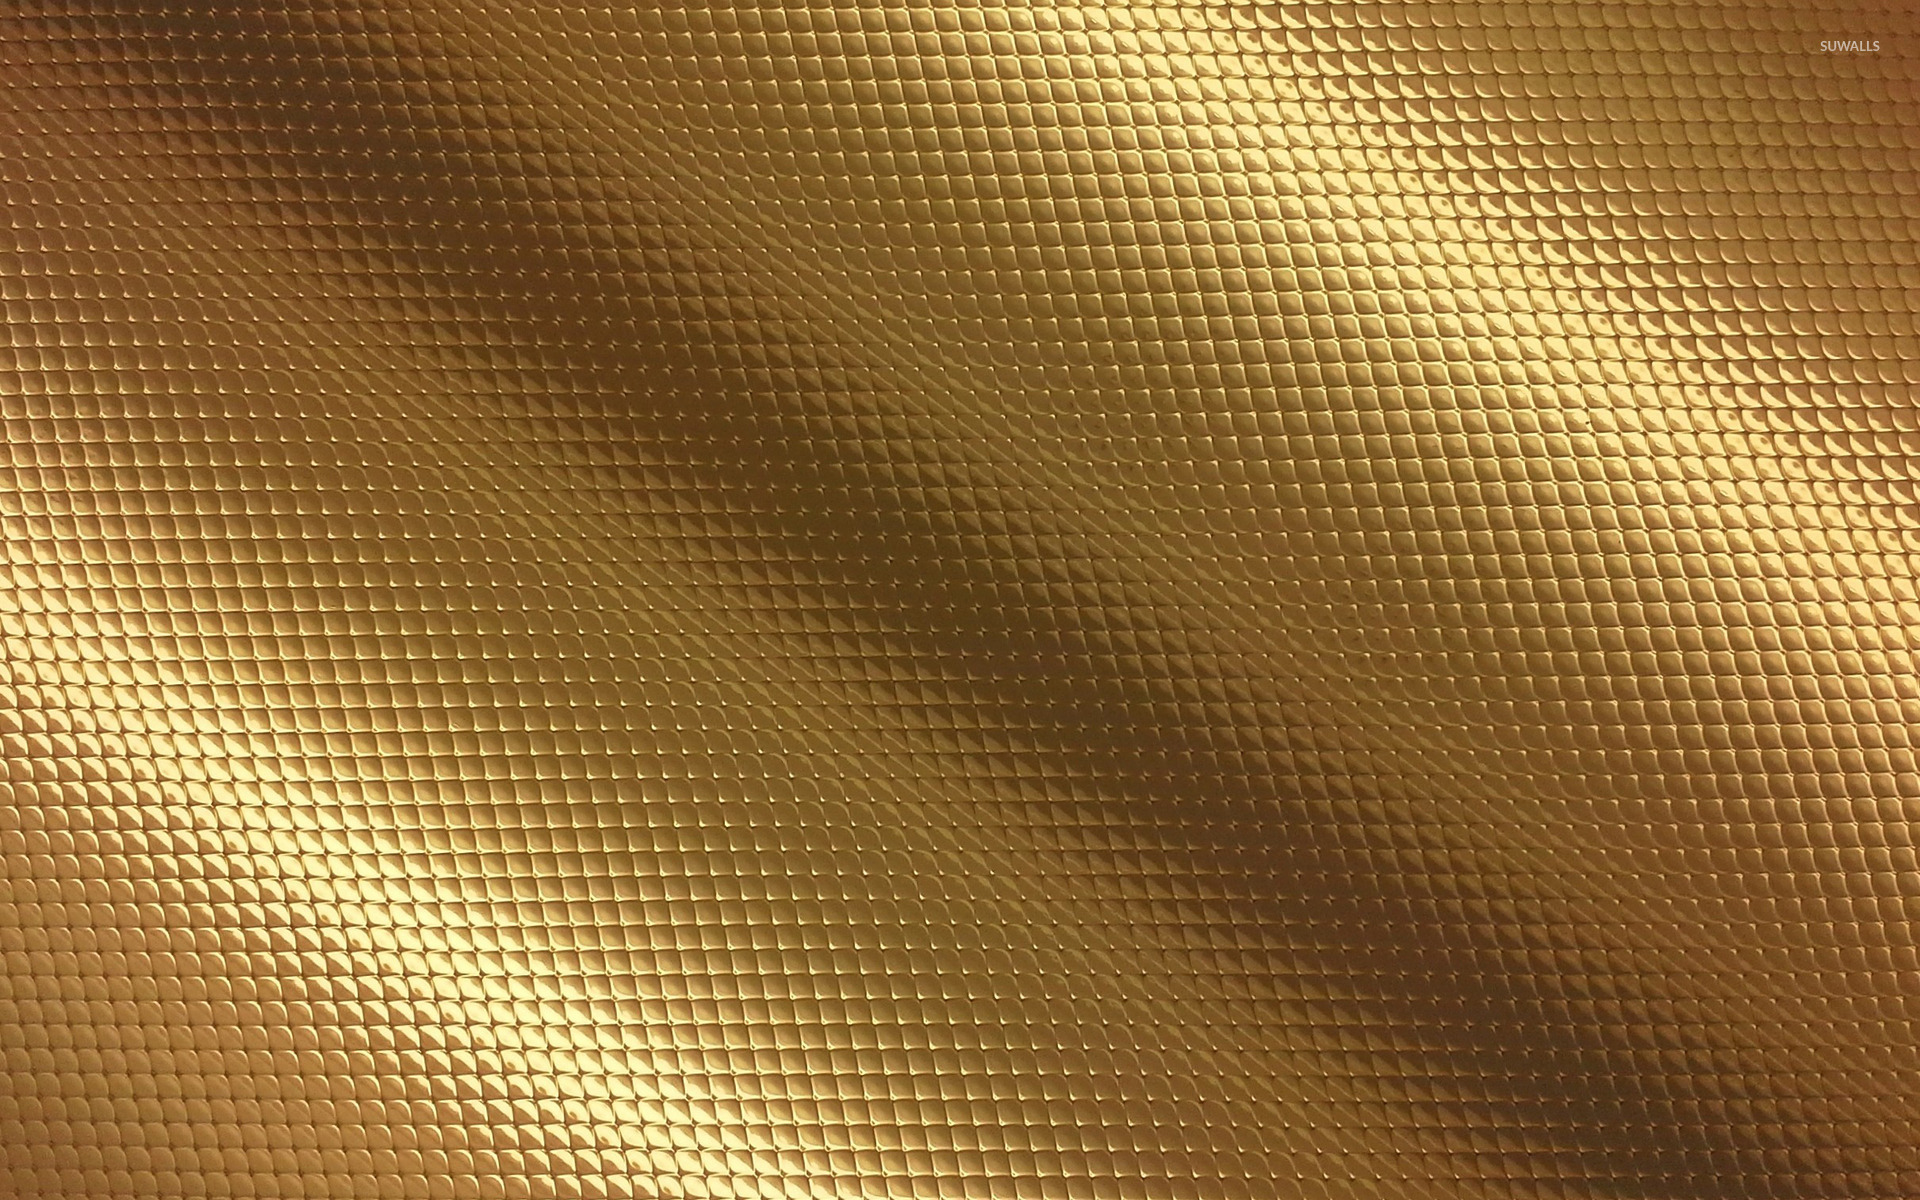 Golden snake skin wallpaper